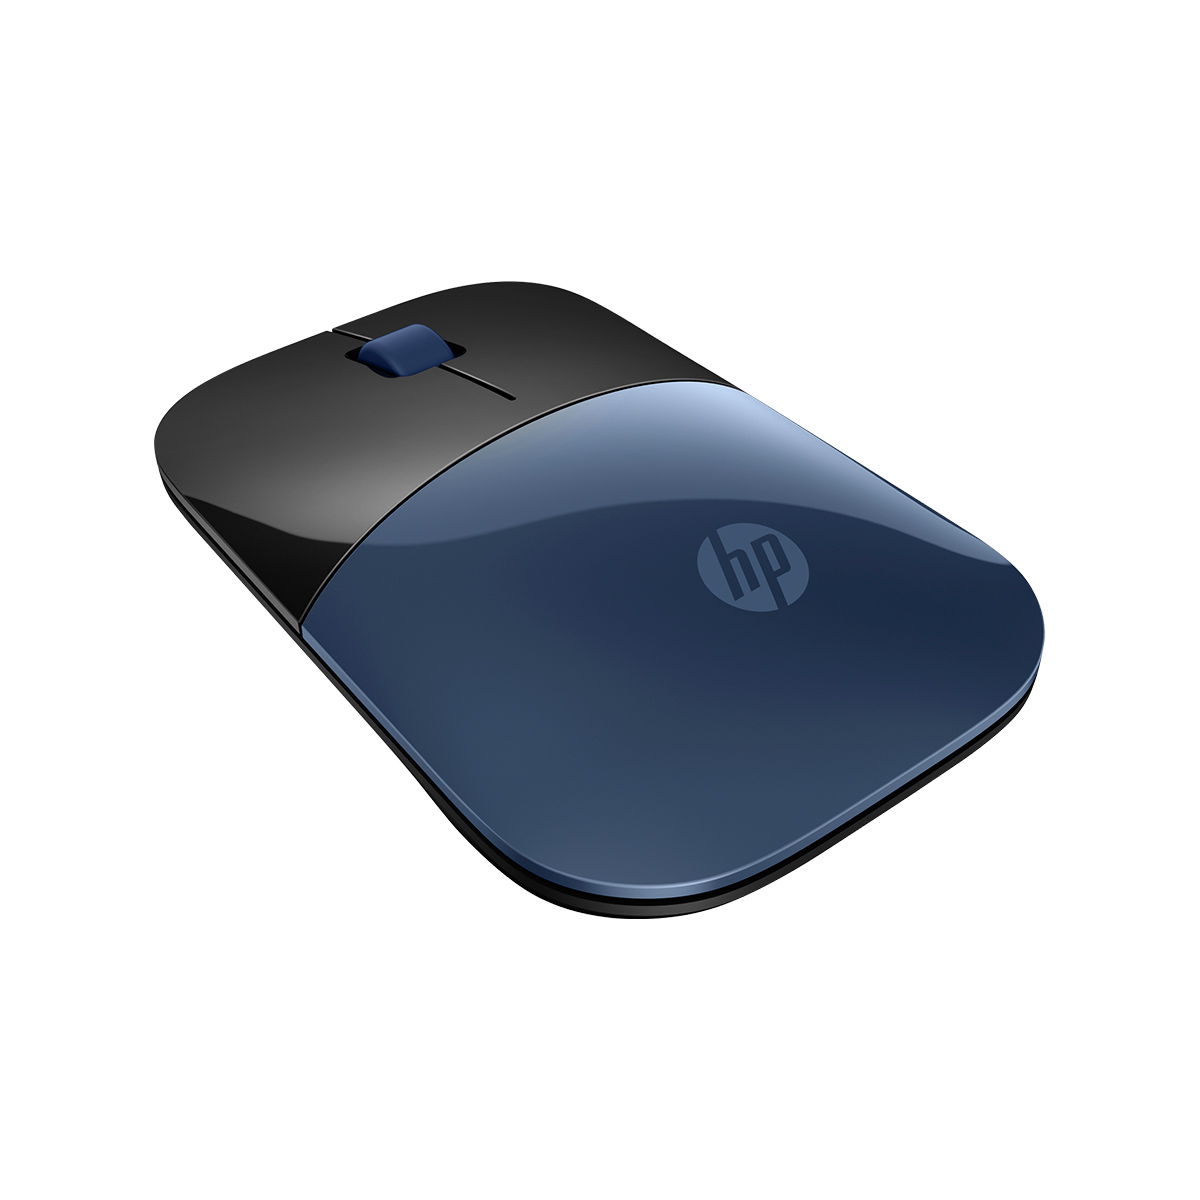 HP Z3700 Blue Wireless Mouse - 7UH88AA